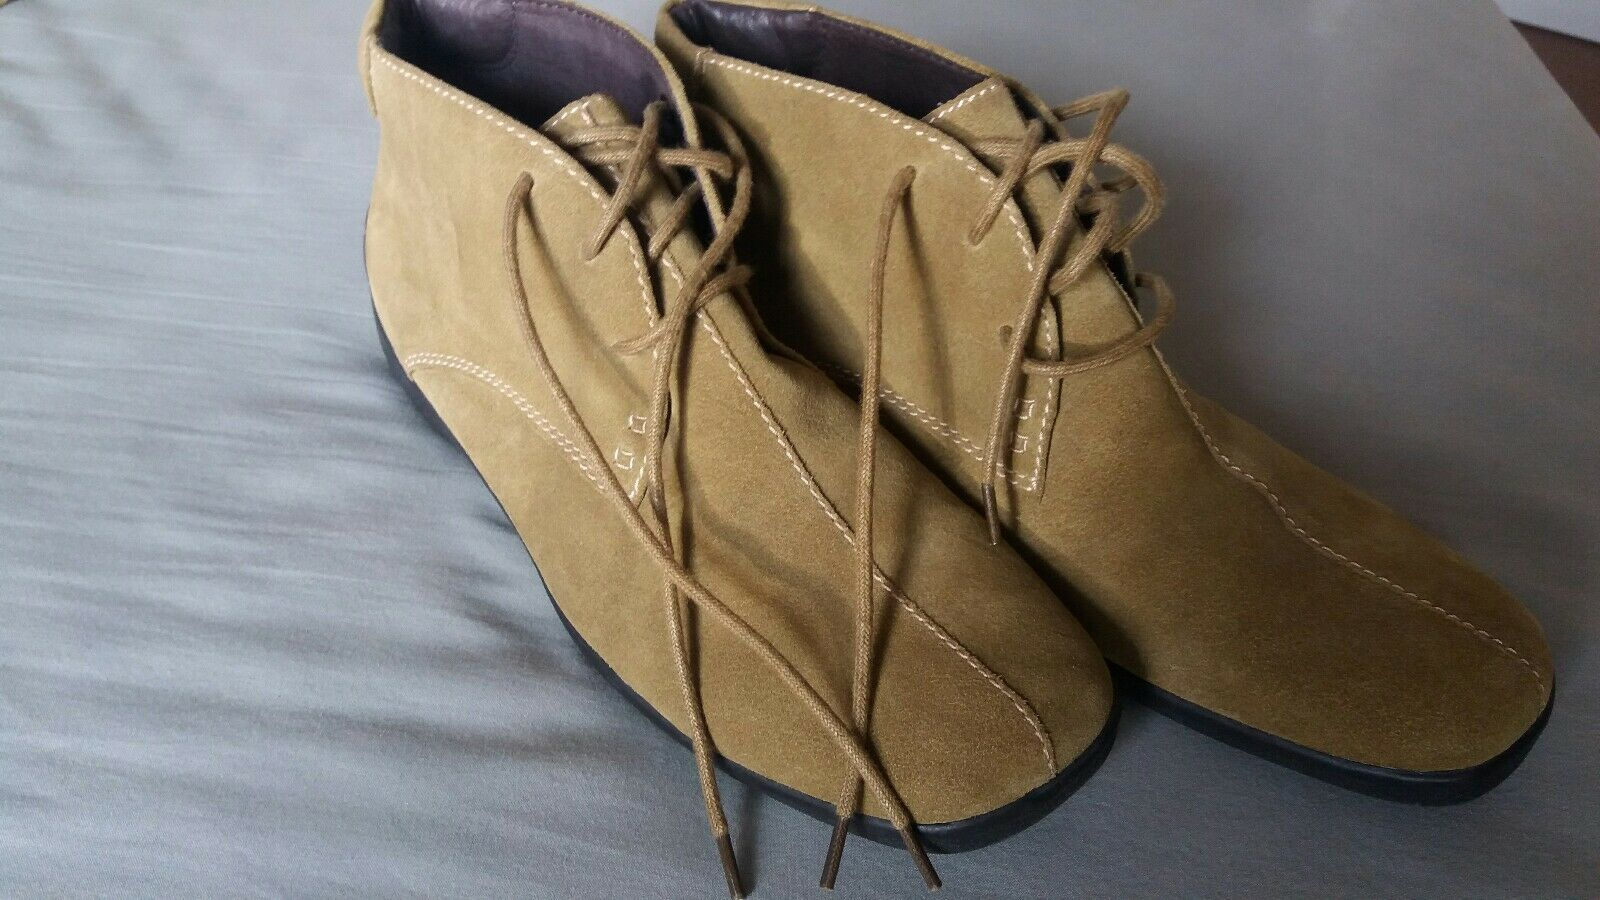 AEROSOLES SUEDE WALKING CASUAL BOOTS SIZE 7